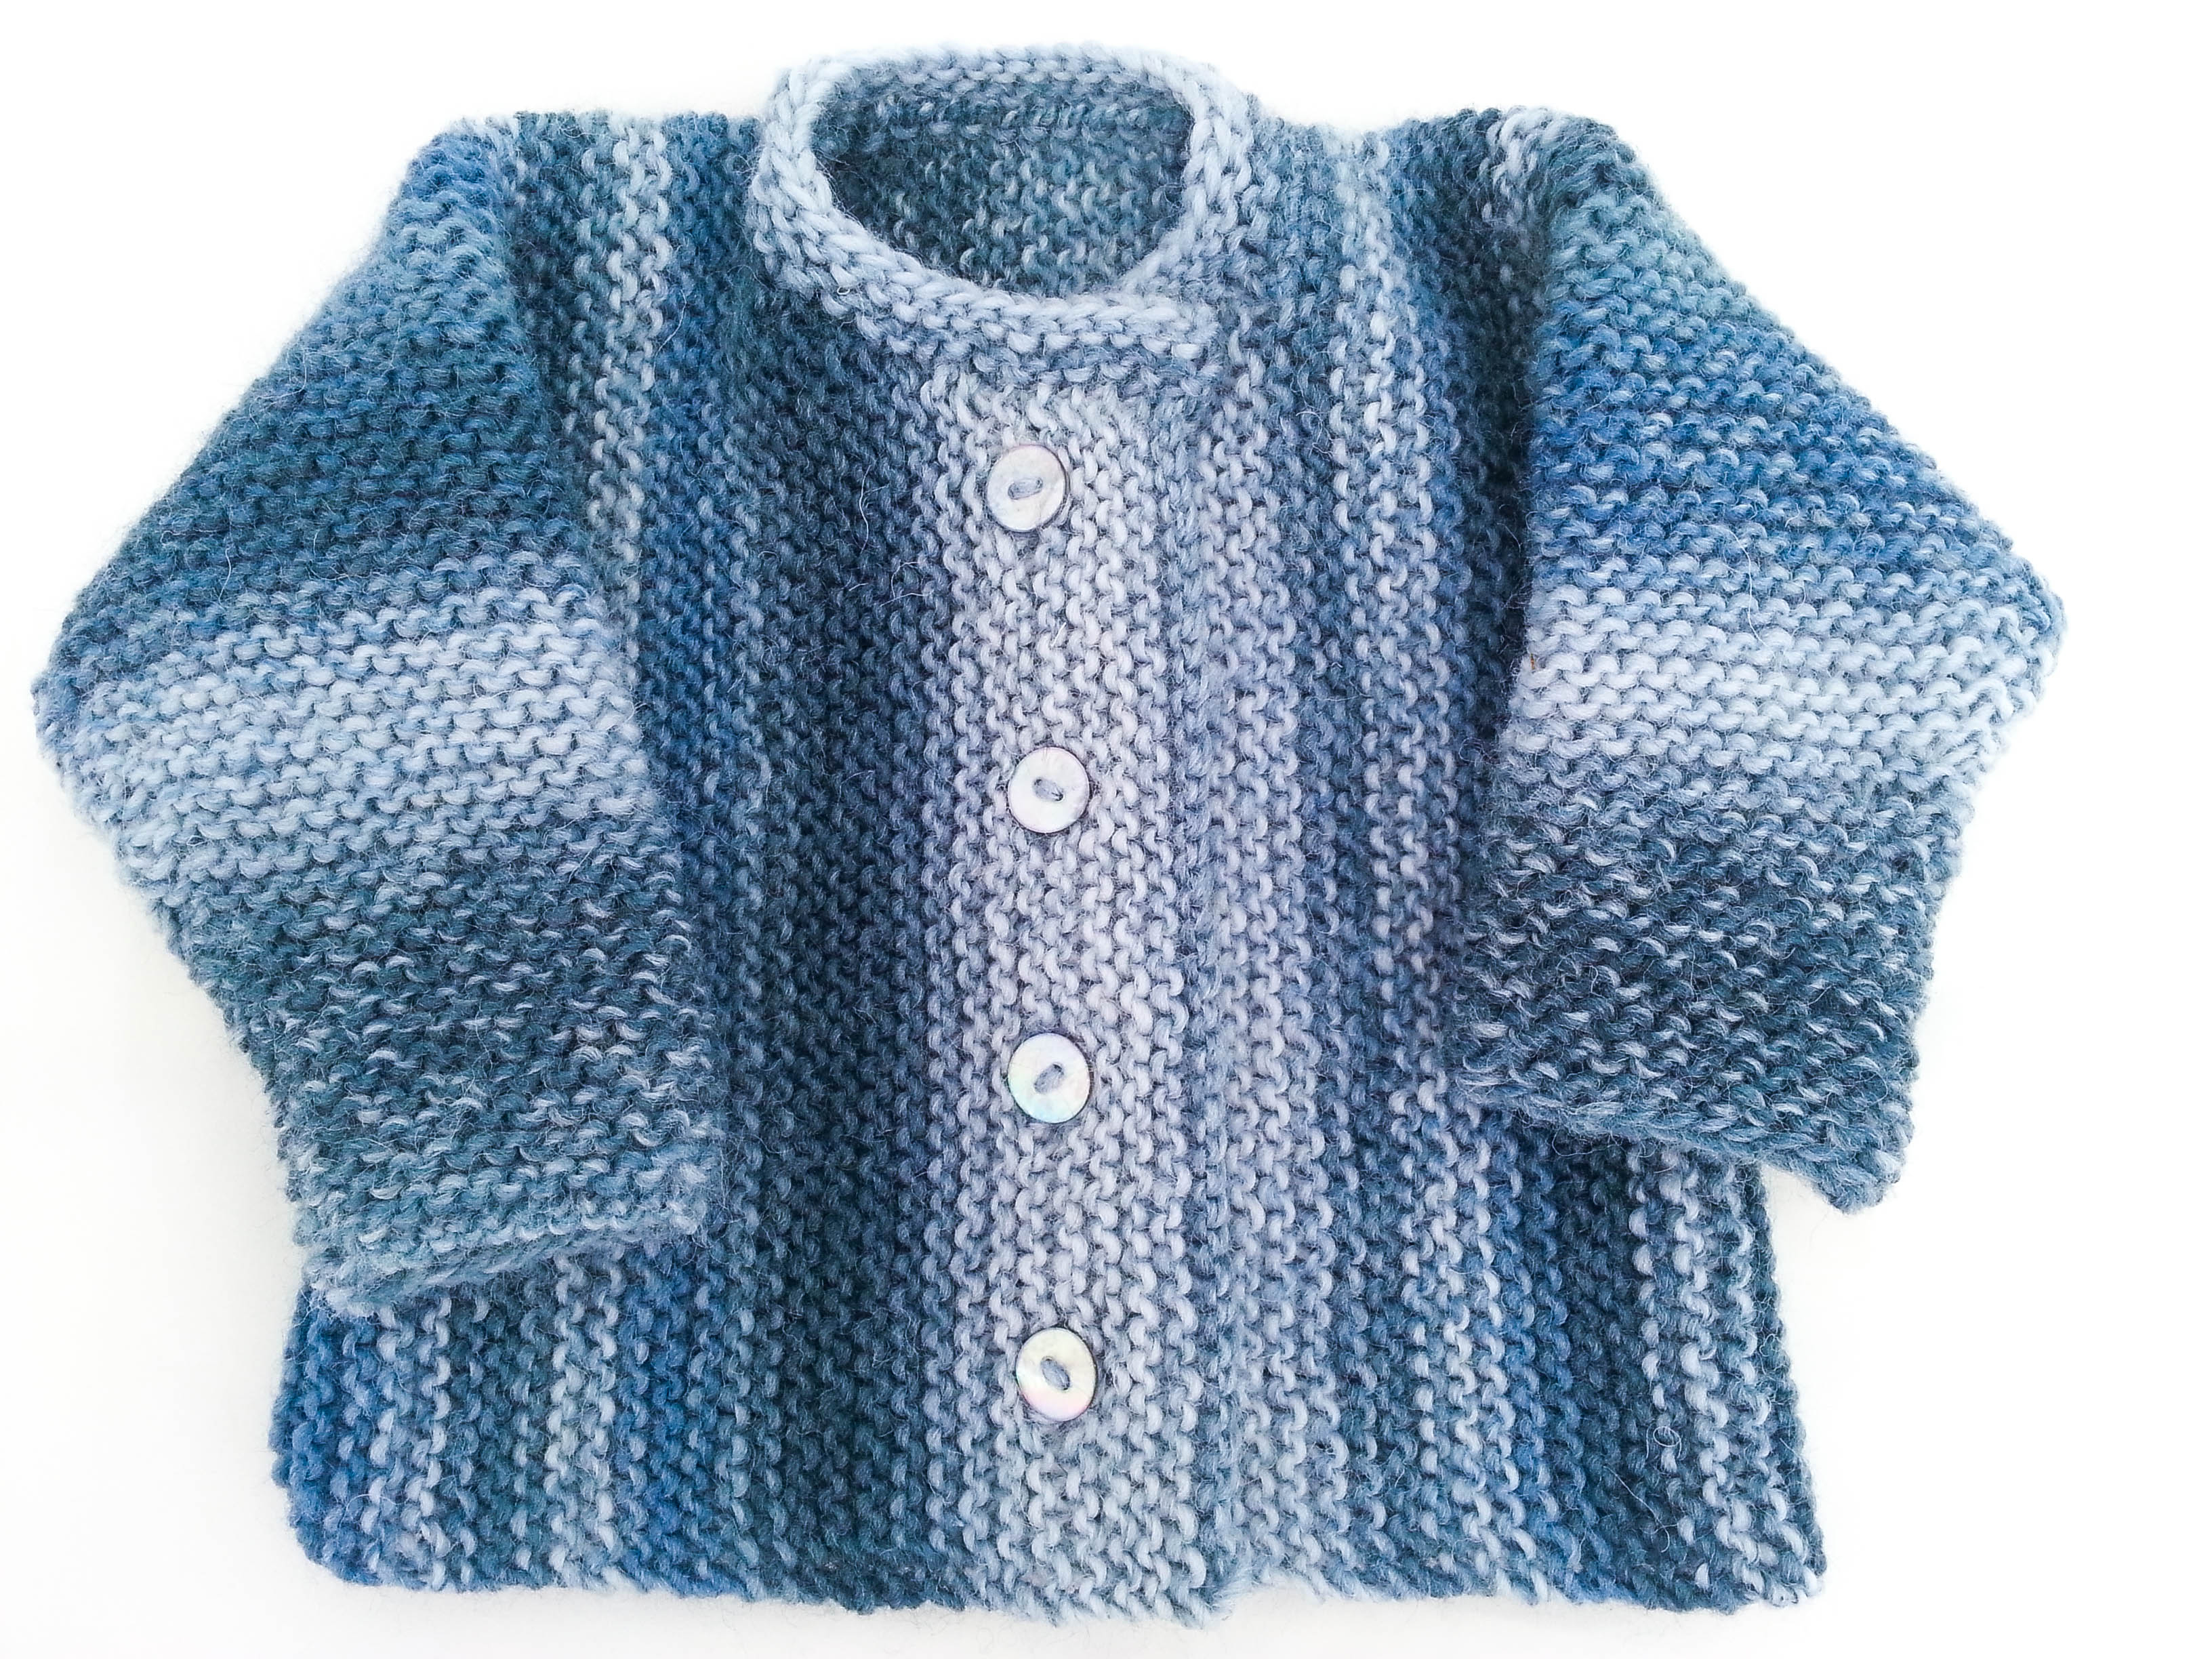 Easy Jumper Knitting Pattern Knitting Pattern Garter Stitch Ba Cardigan One Piece Ba Sweater 5 Sizes Easy Pattern Toddler Buttoned Sweater